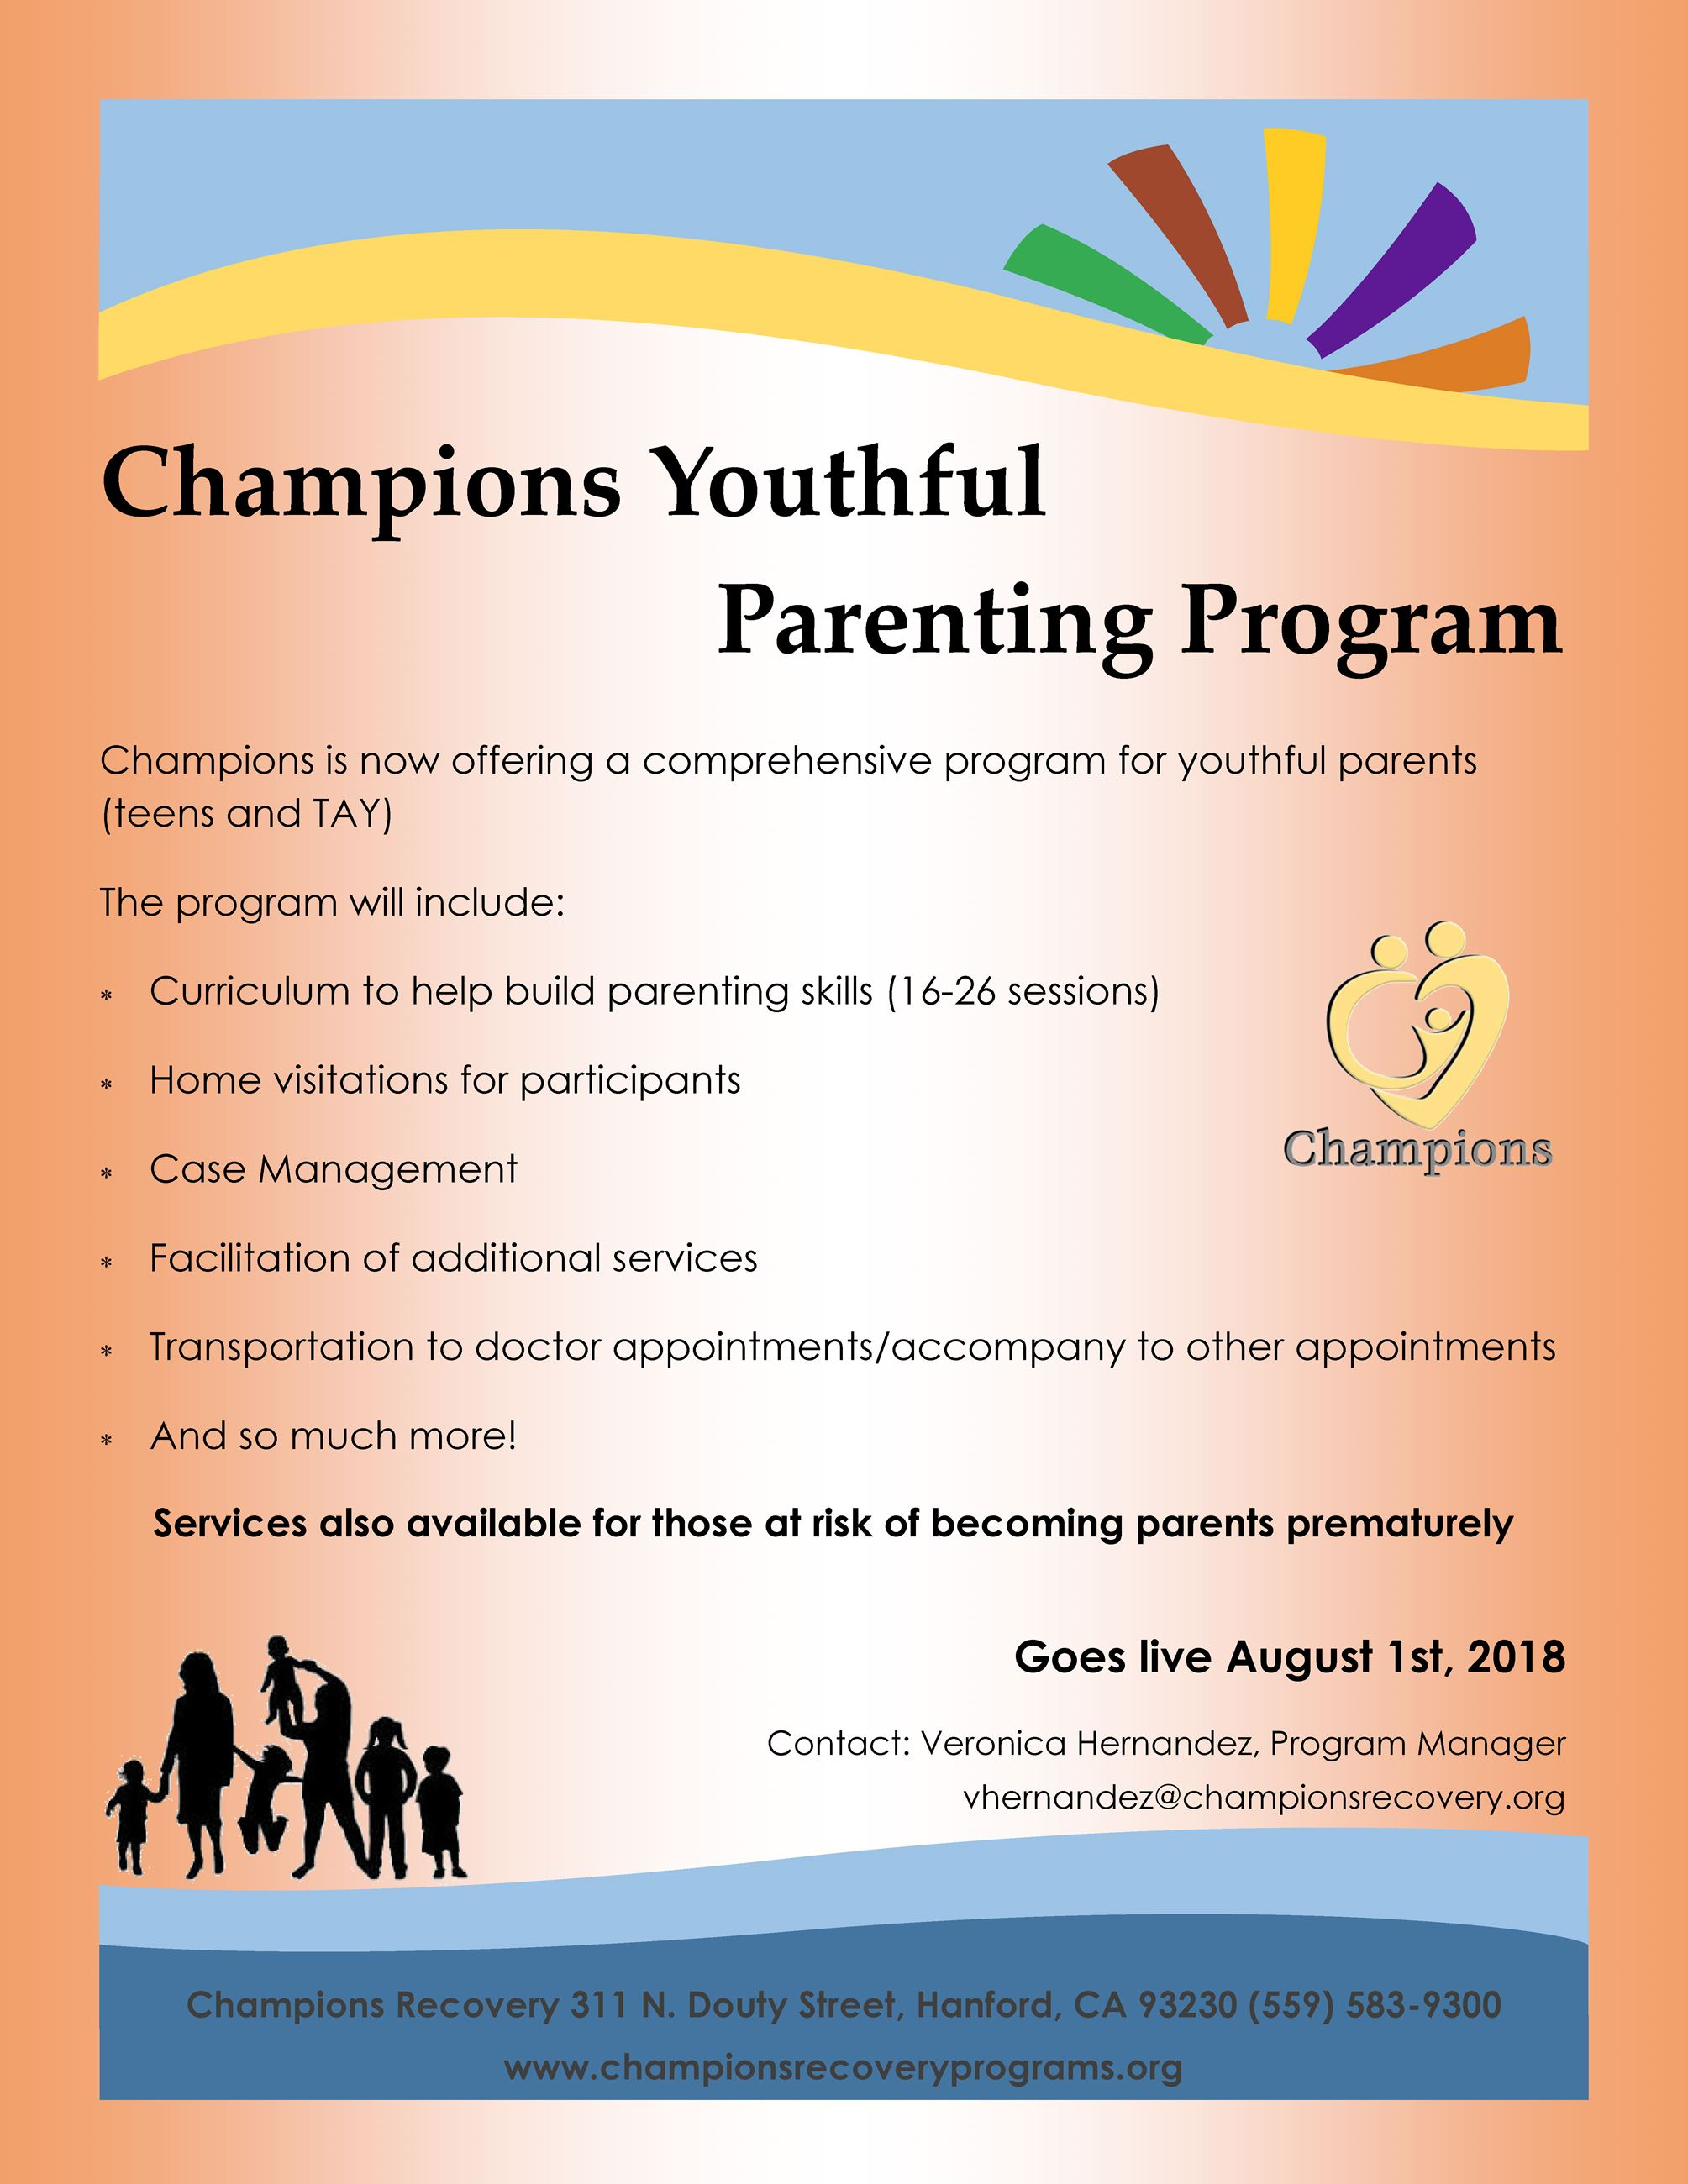 Champions Youthful Parenting Program Flyer_Page_1